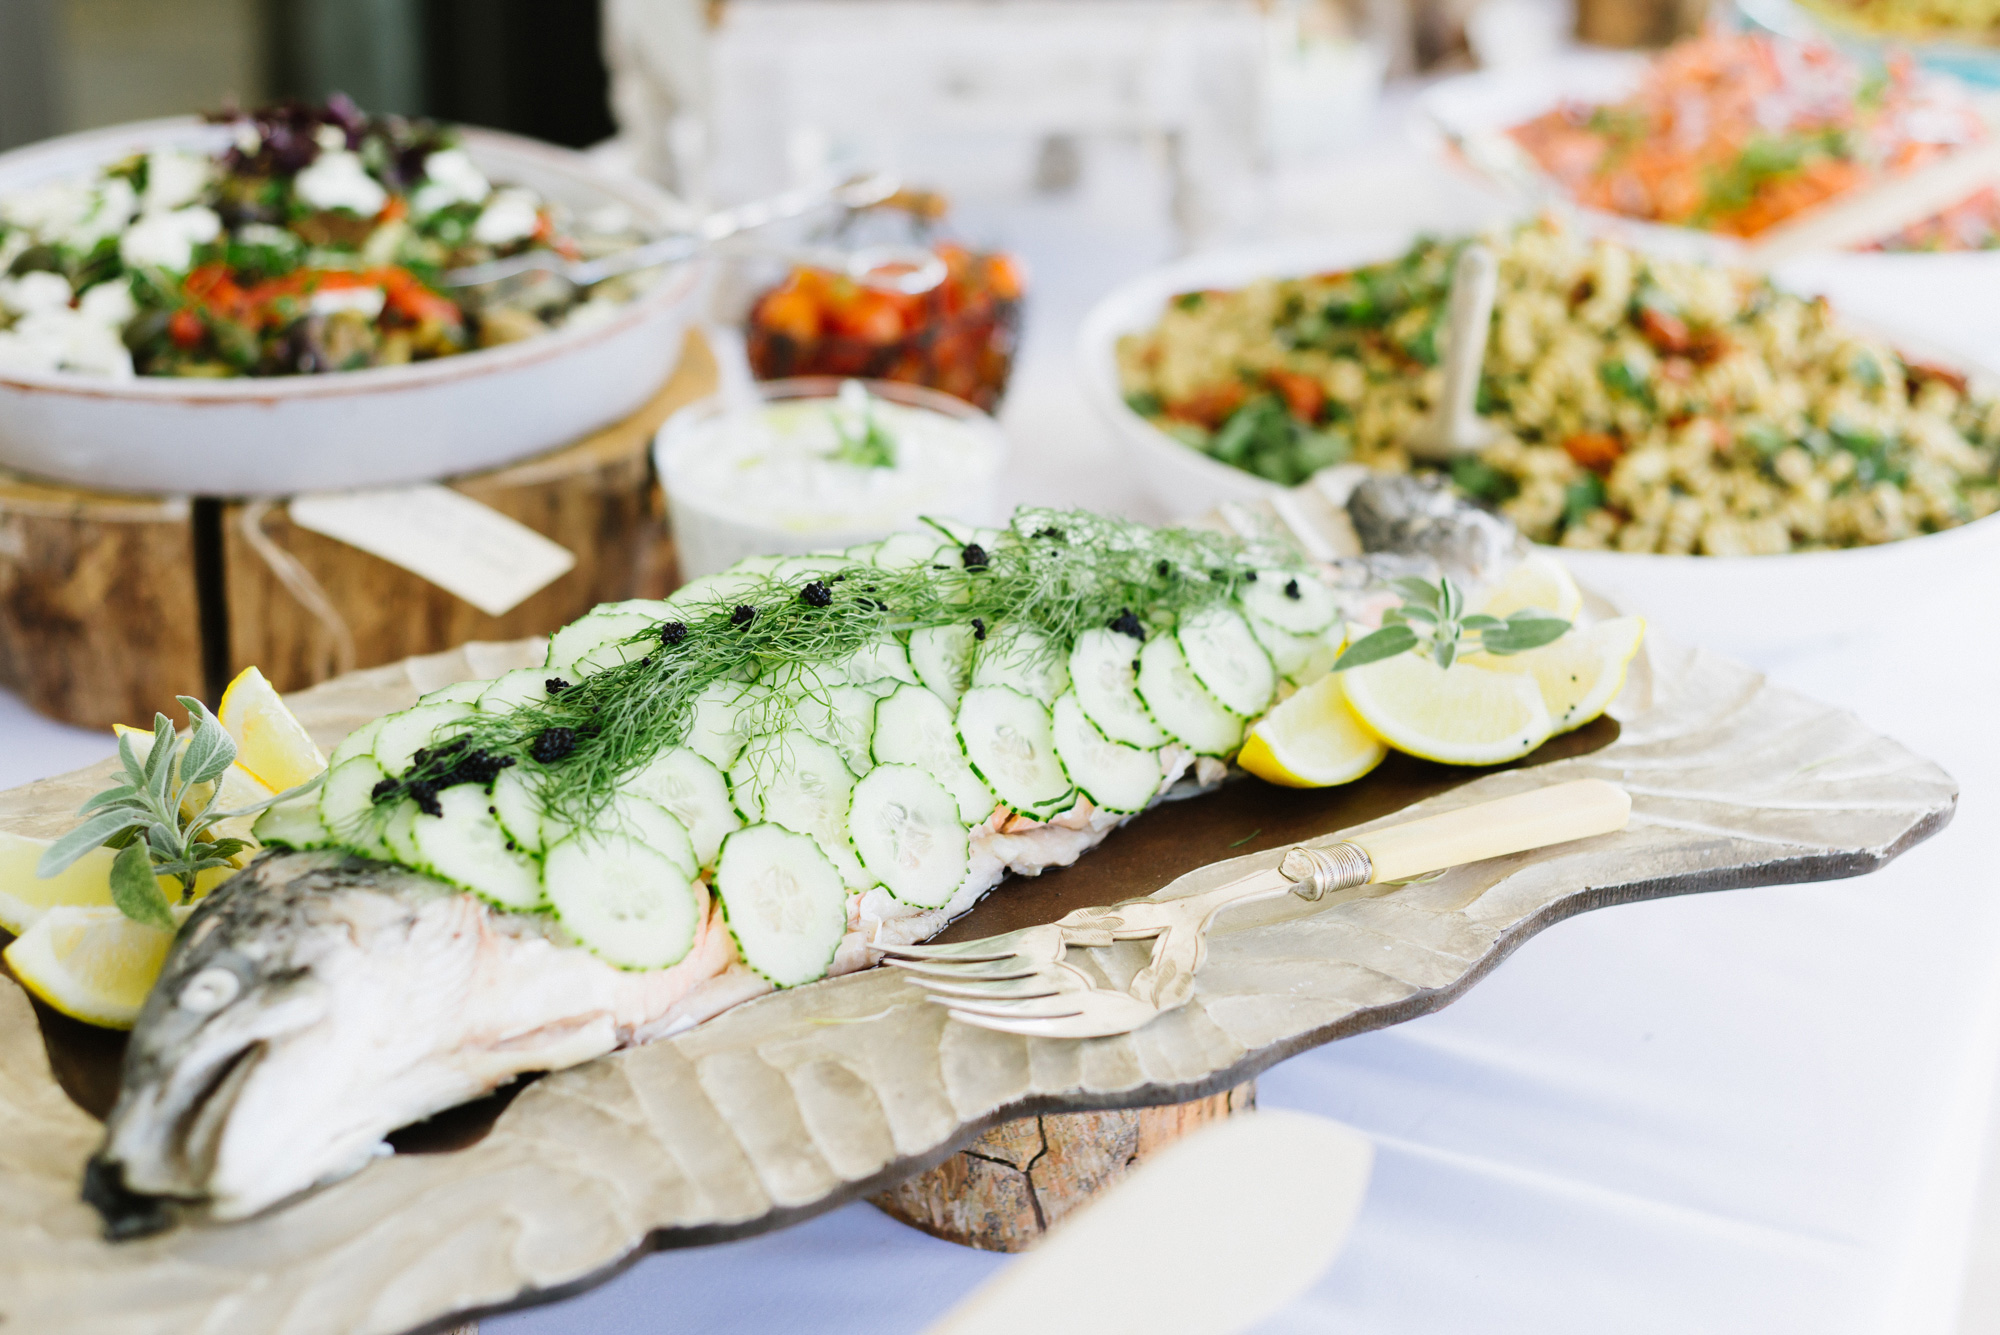 LoveFoodIbiza Ibiza Wedding Catering